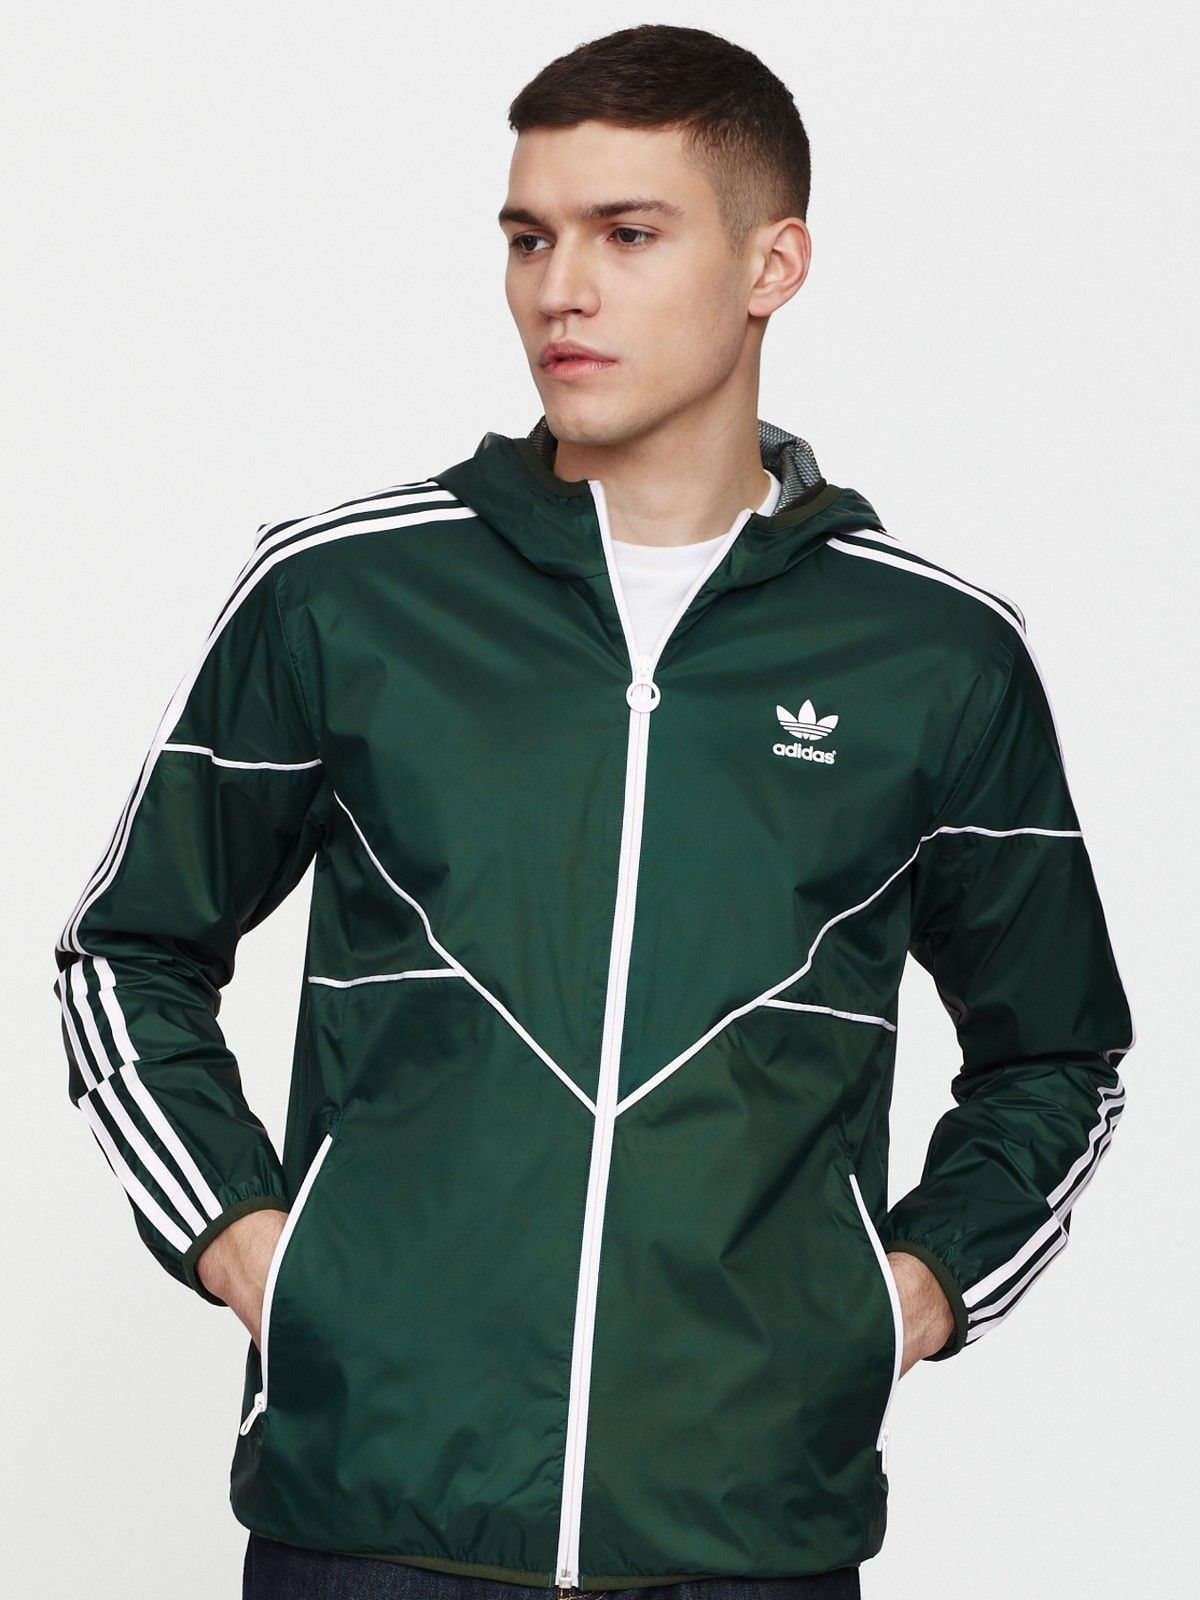 Adidas Originals Mens Windbreaker Jacket Very Co Uk I